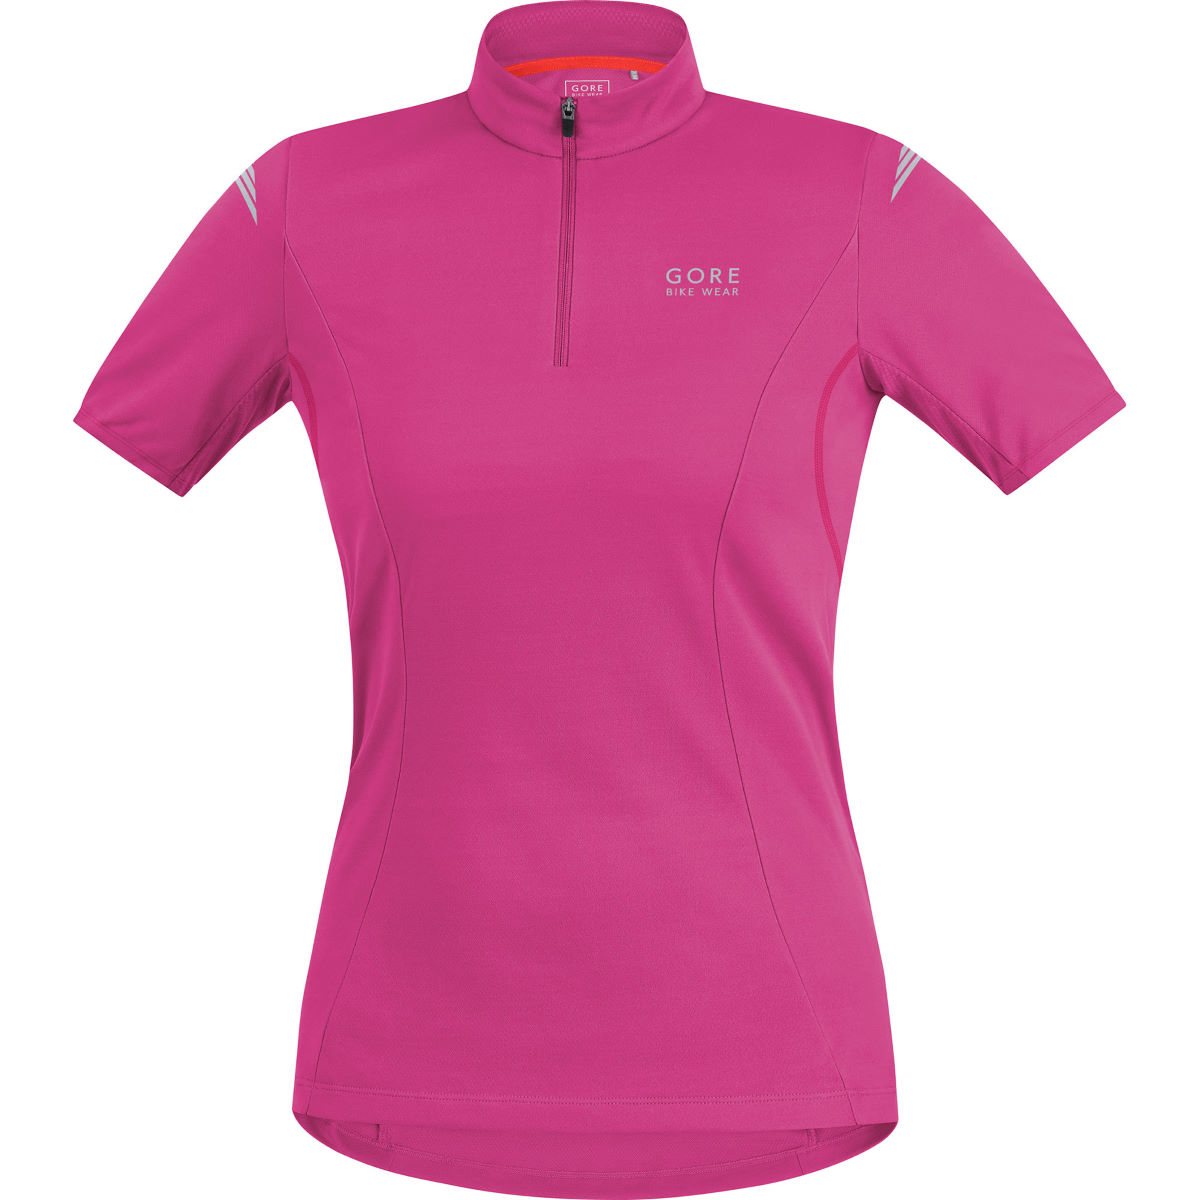 Maillot Femme Gore Bike Wear E (manches courtes) - XL Raspberry